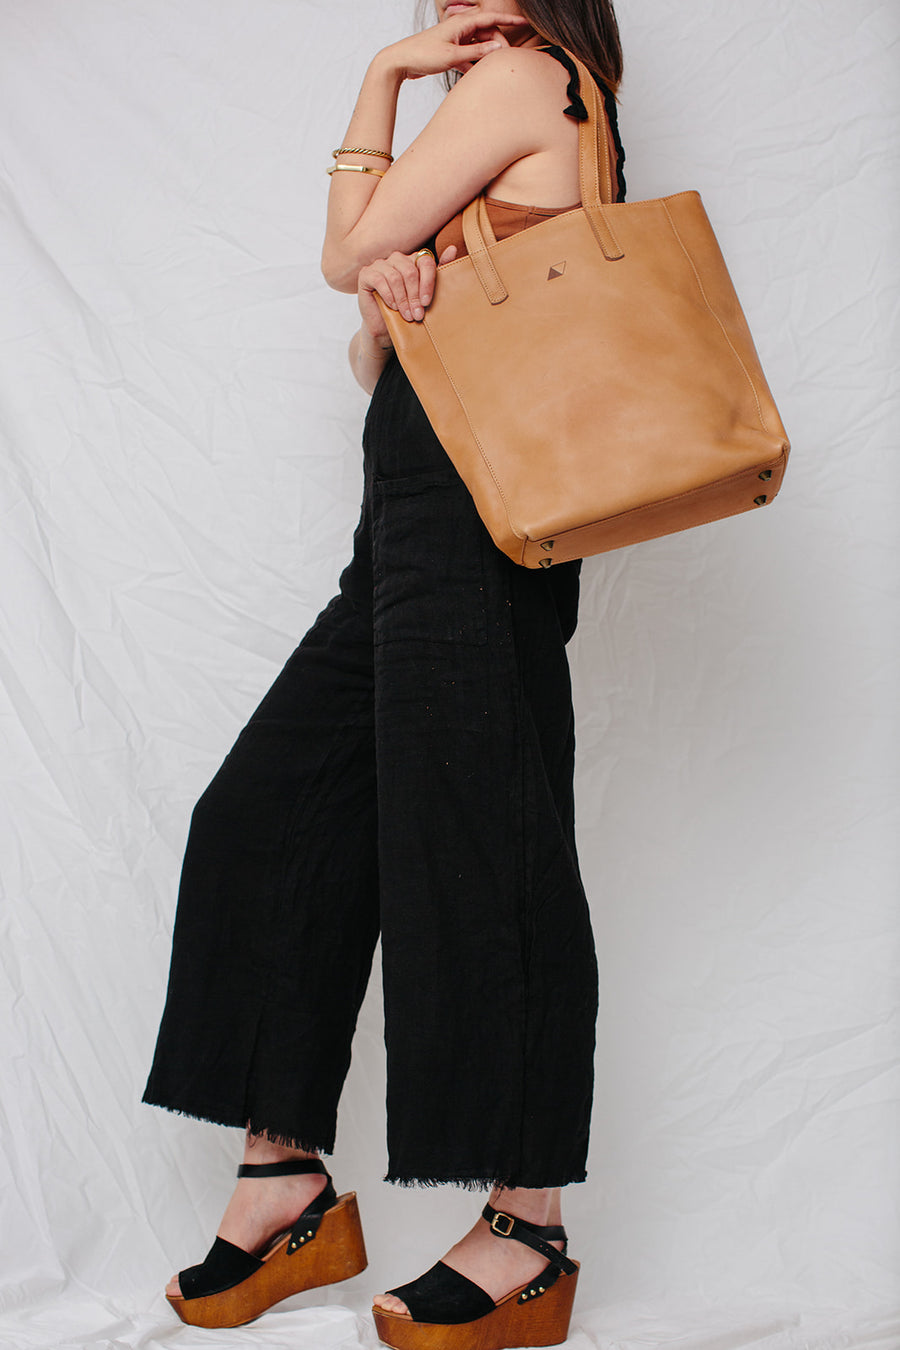 joanie leather tote